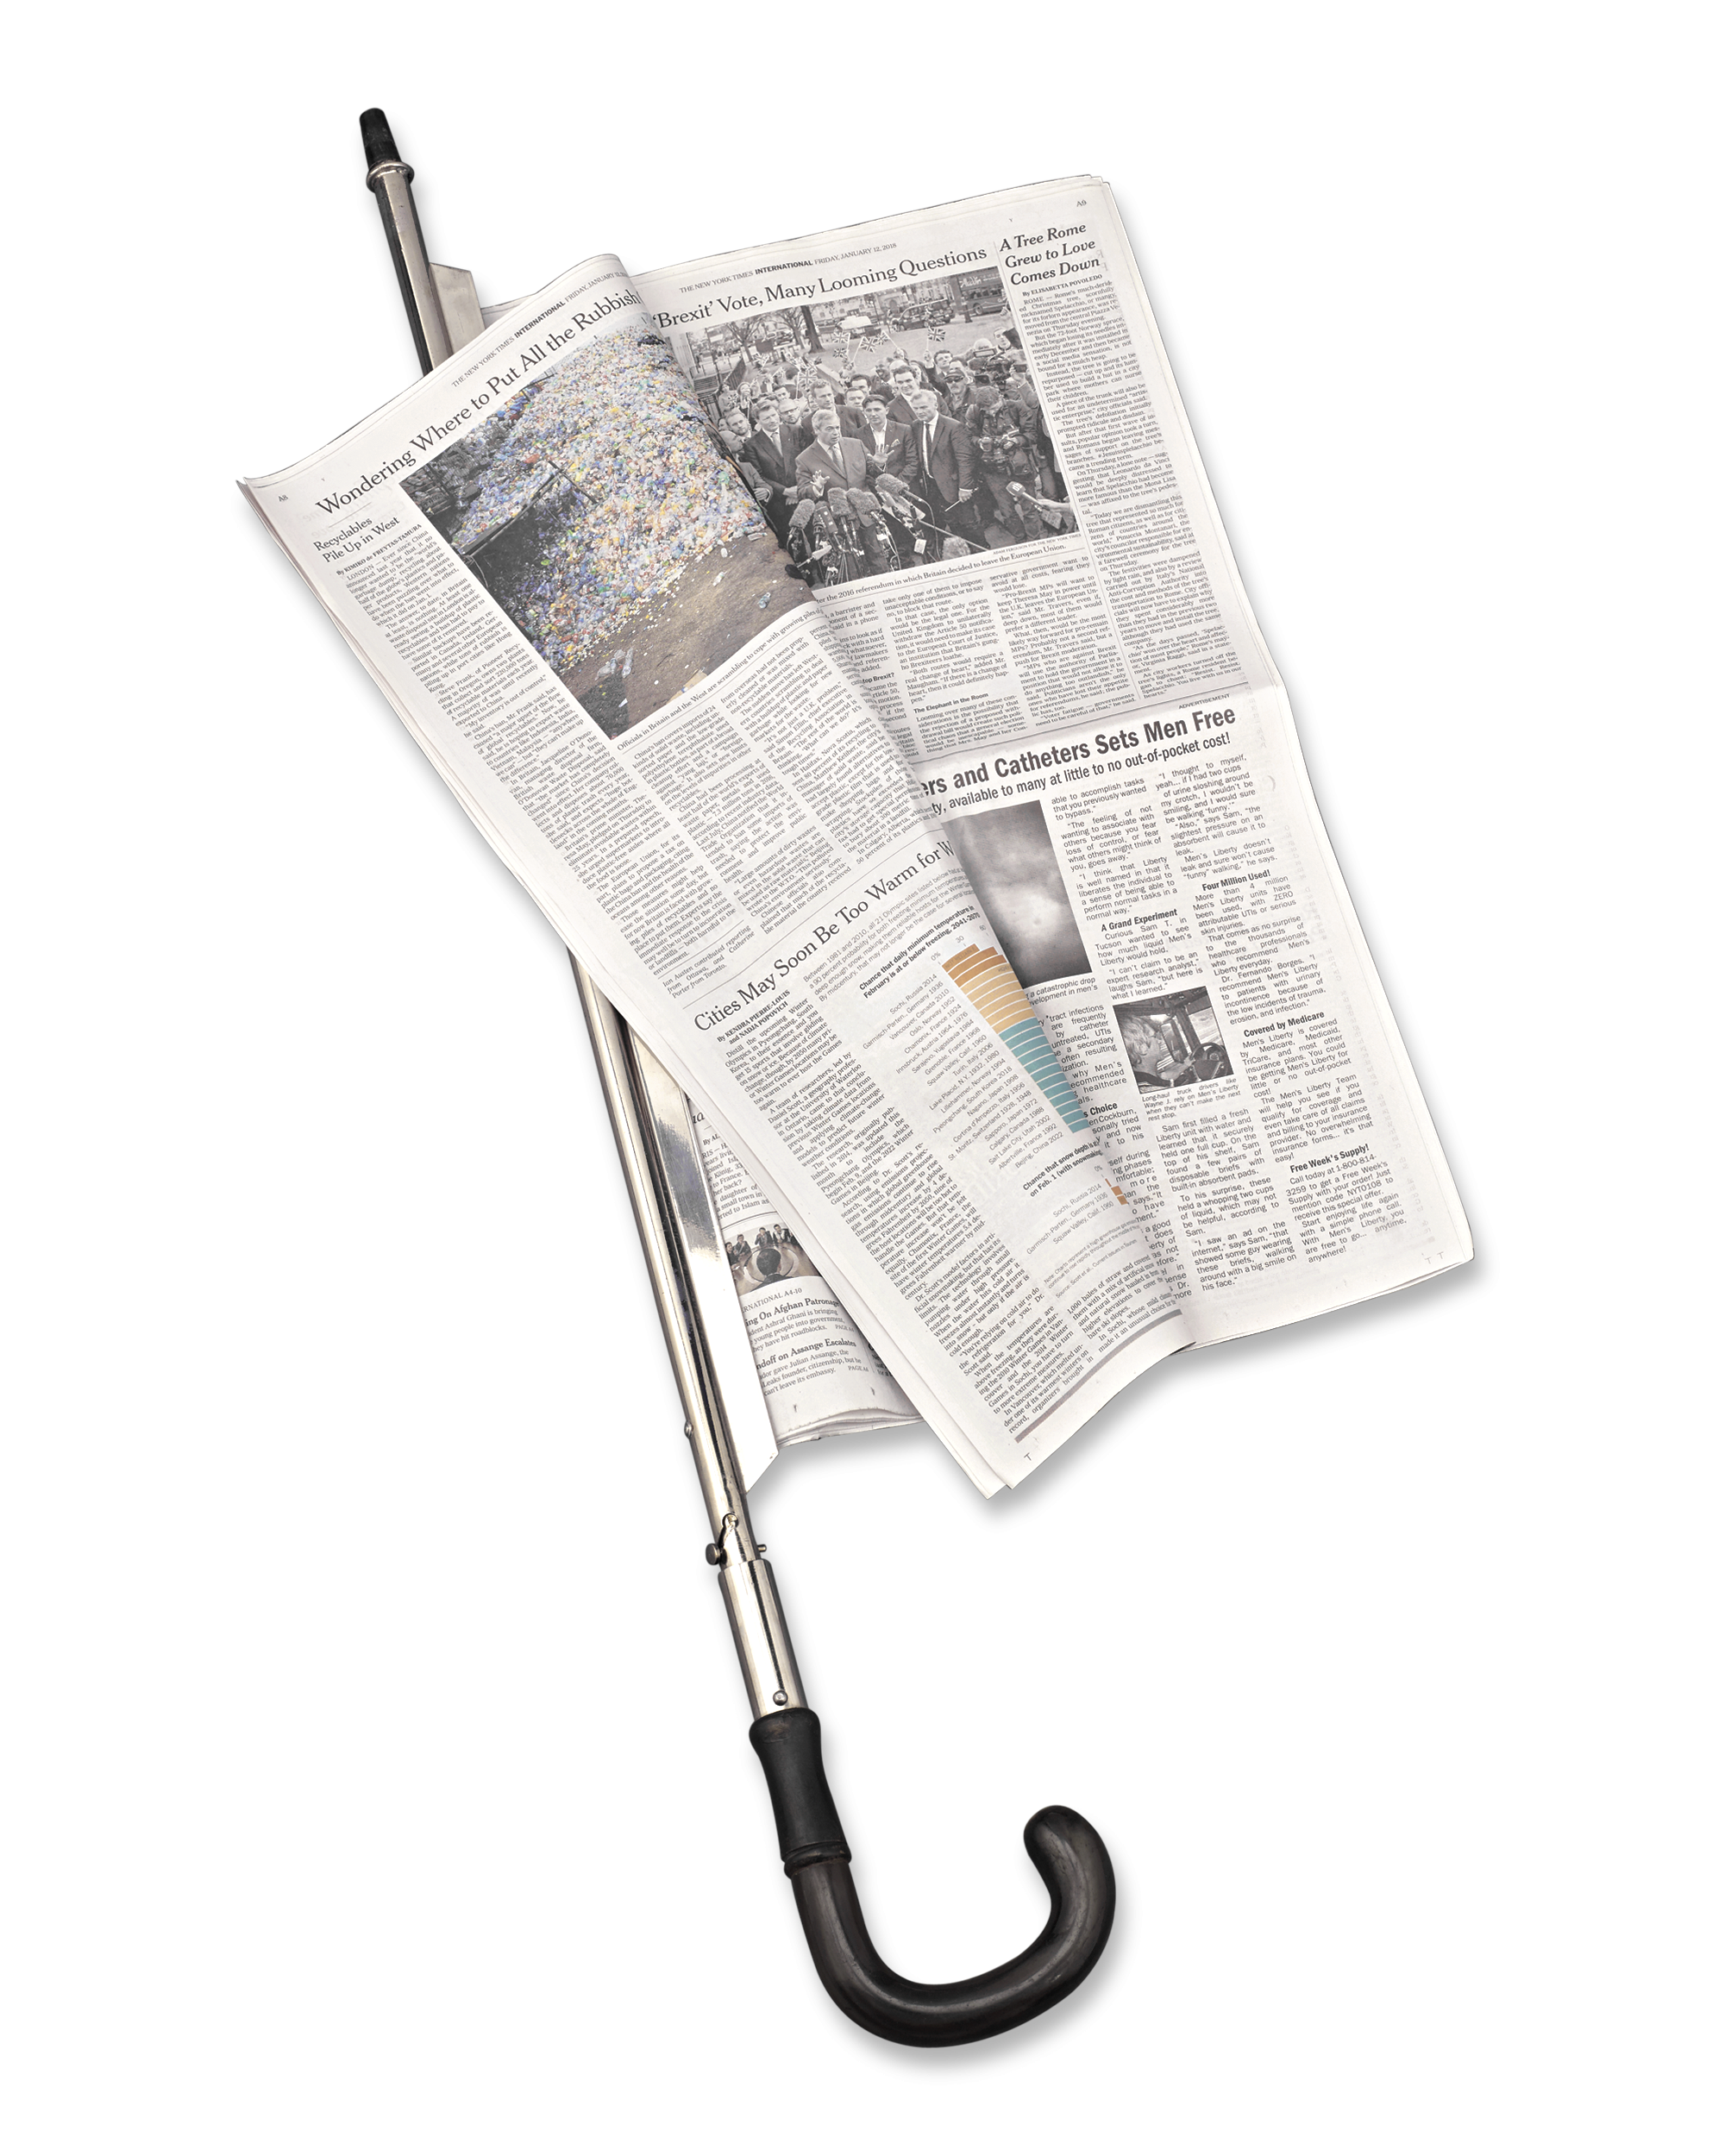 Newspaper rolled up png. Holder cane canes antiques